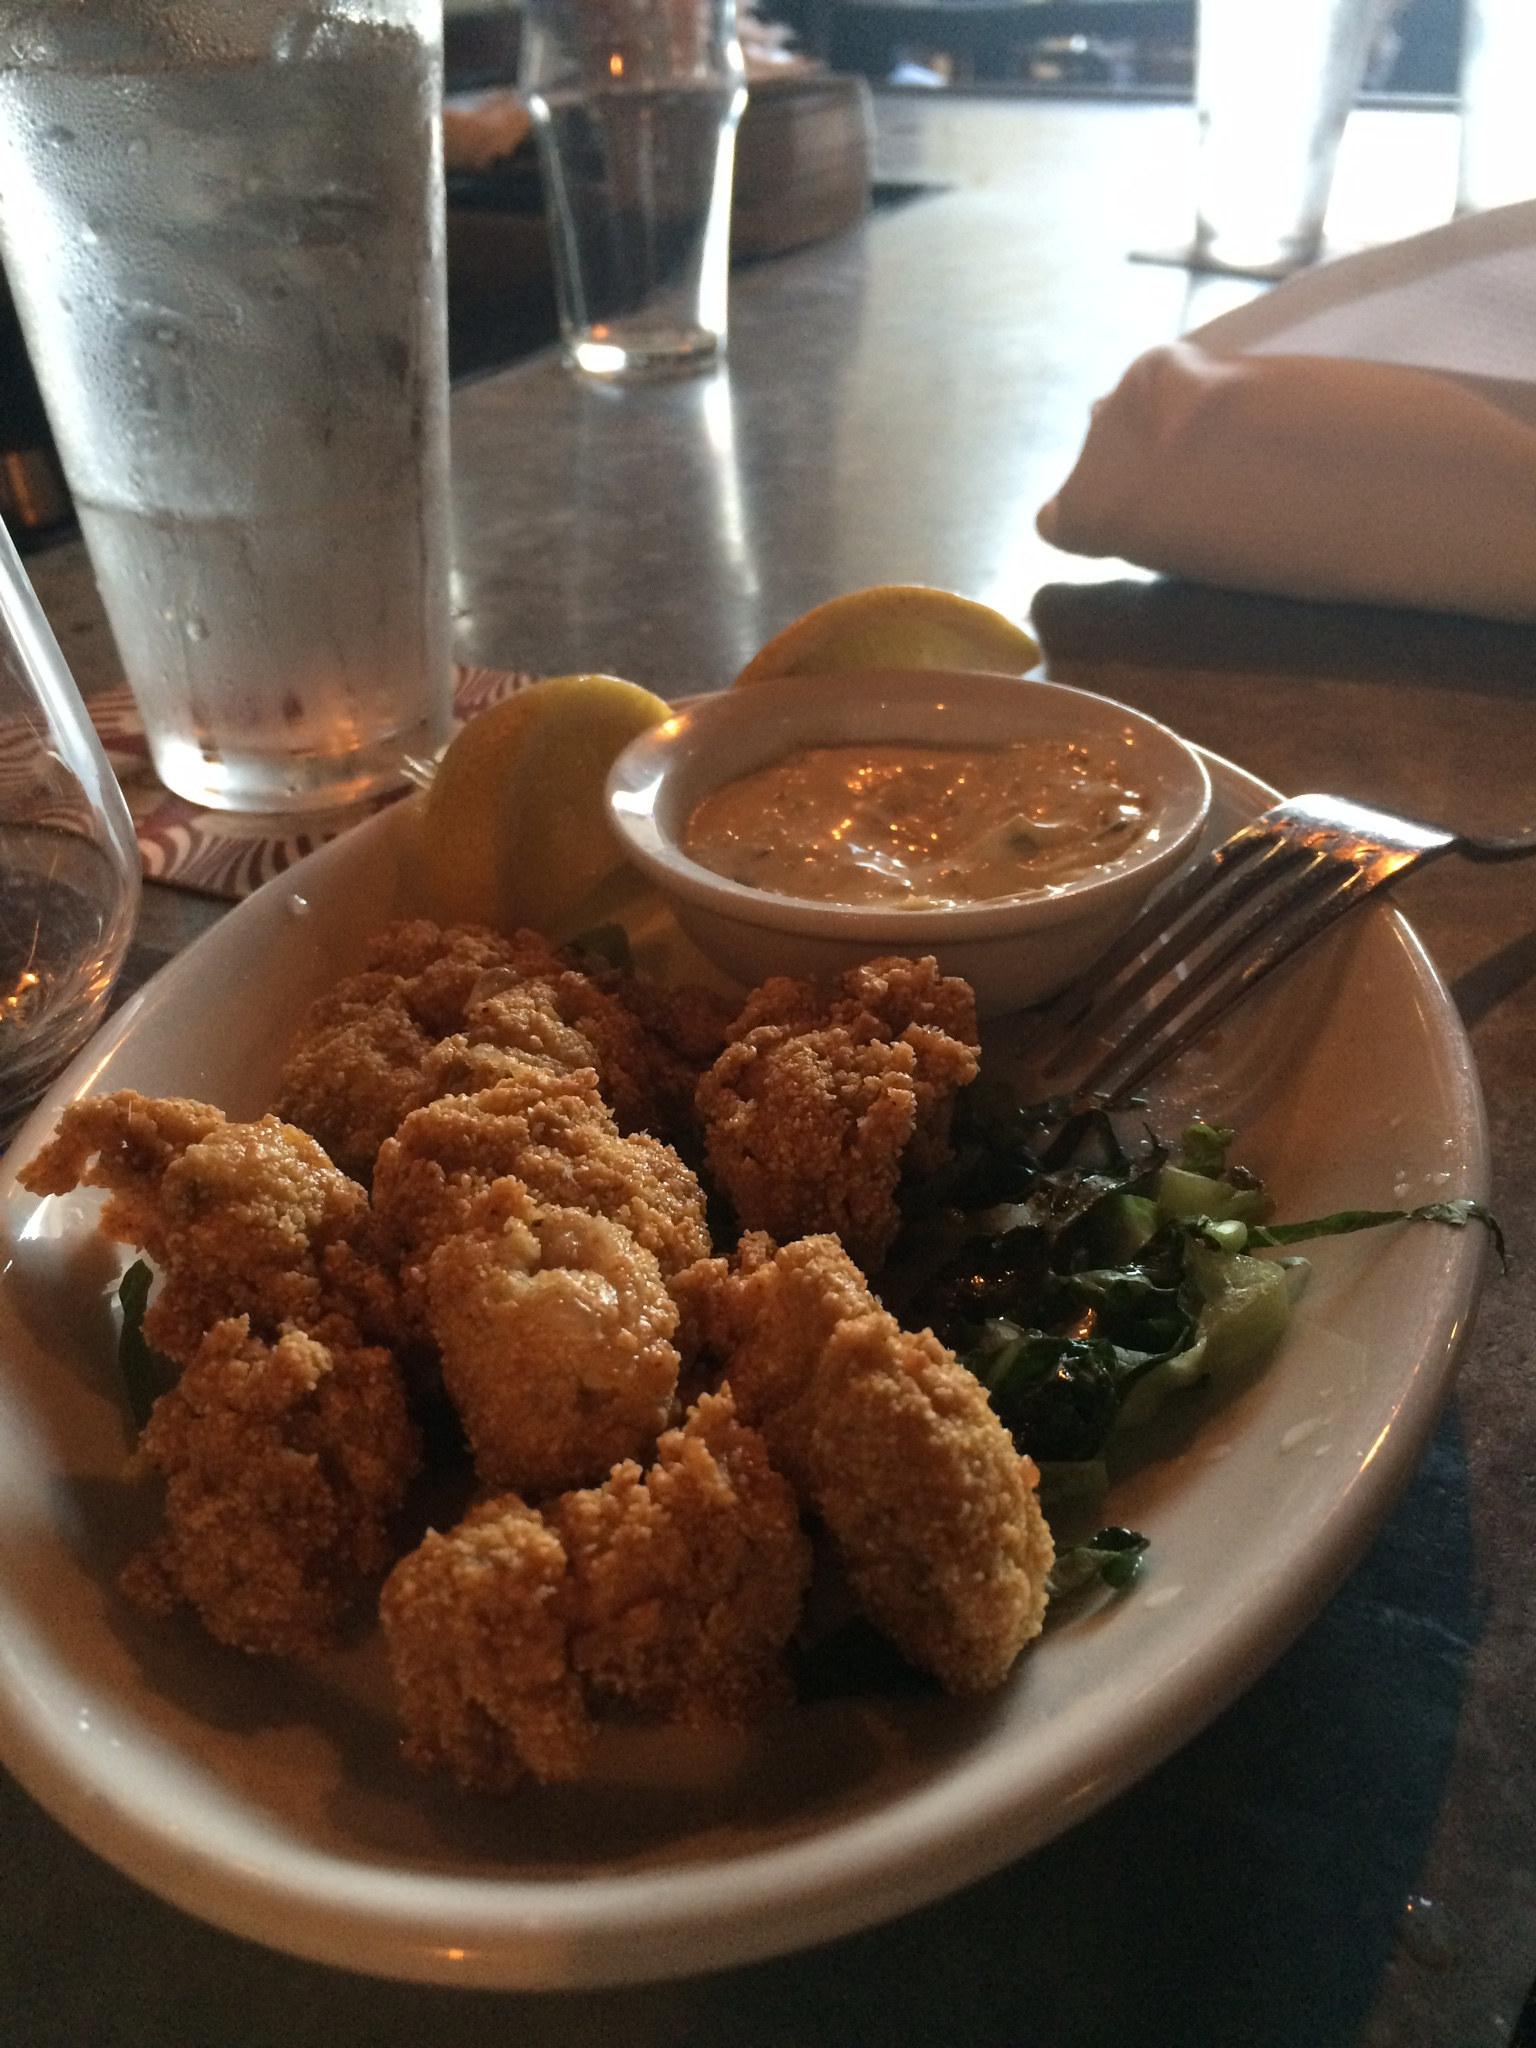 Fried oysters from Republic.